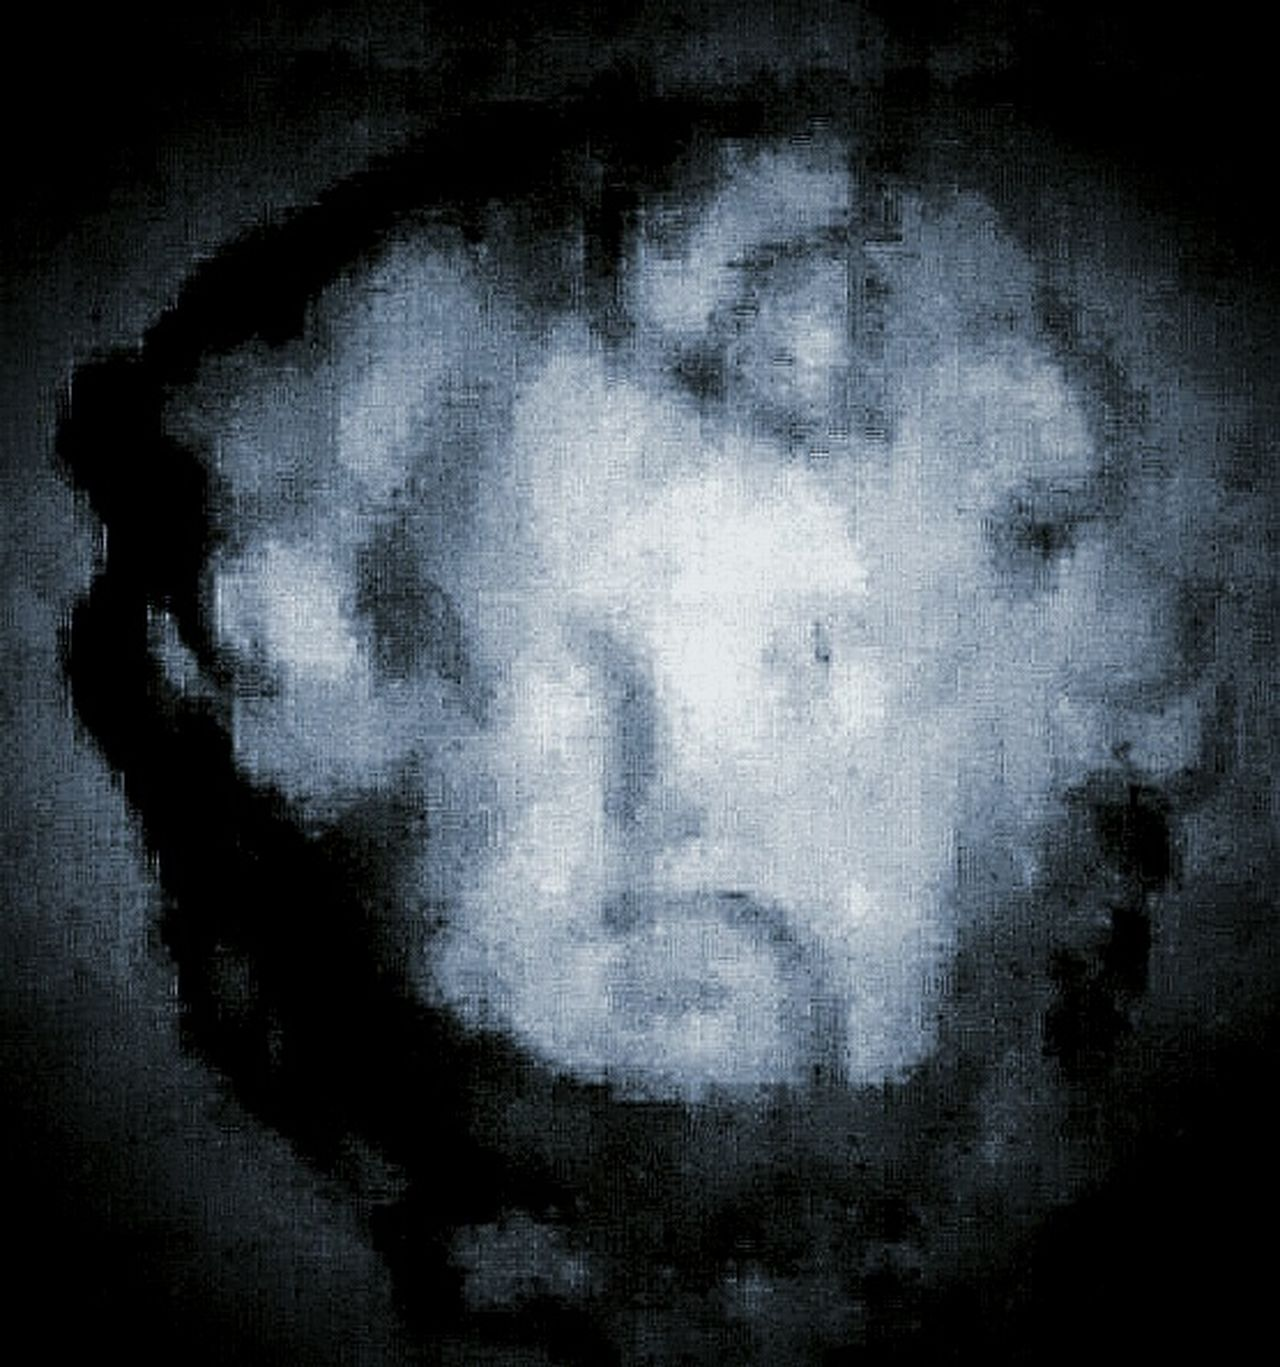 Seeing Ghosts Ghosts Ghost Hunting Not Strange To Me Ghost Face Ghostface Ghost Ghostly Ghosthunting Ghosts And Ghouls